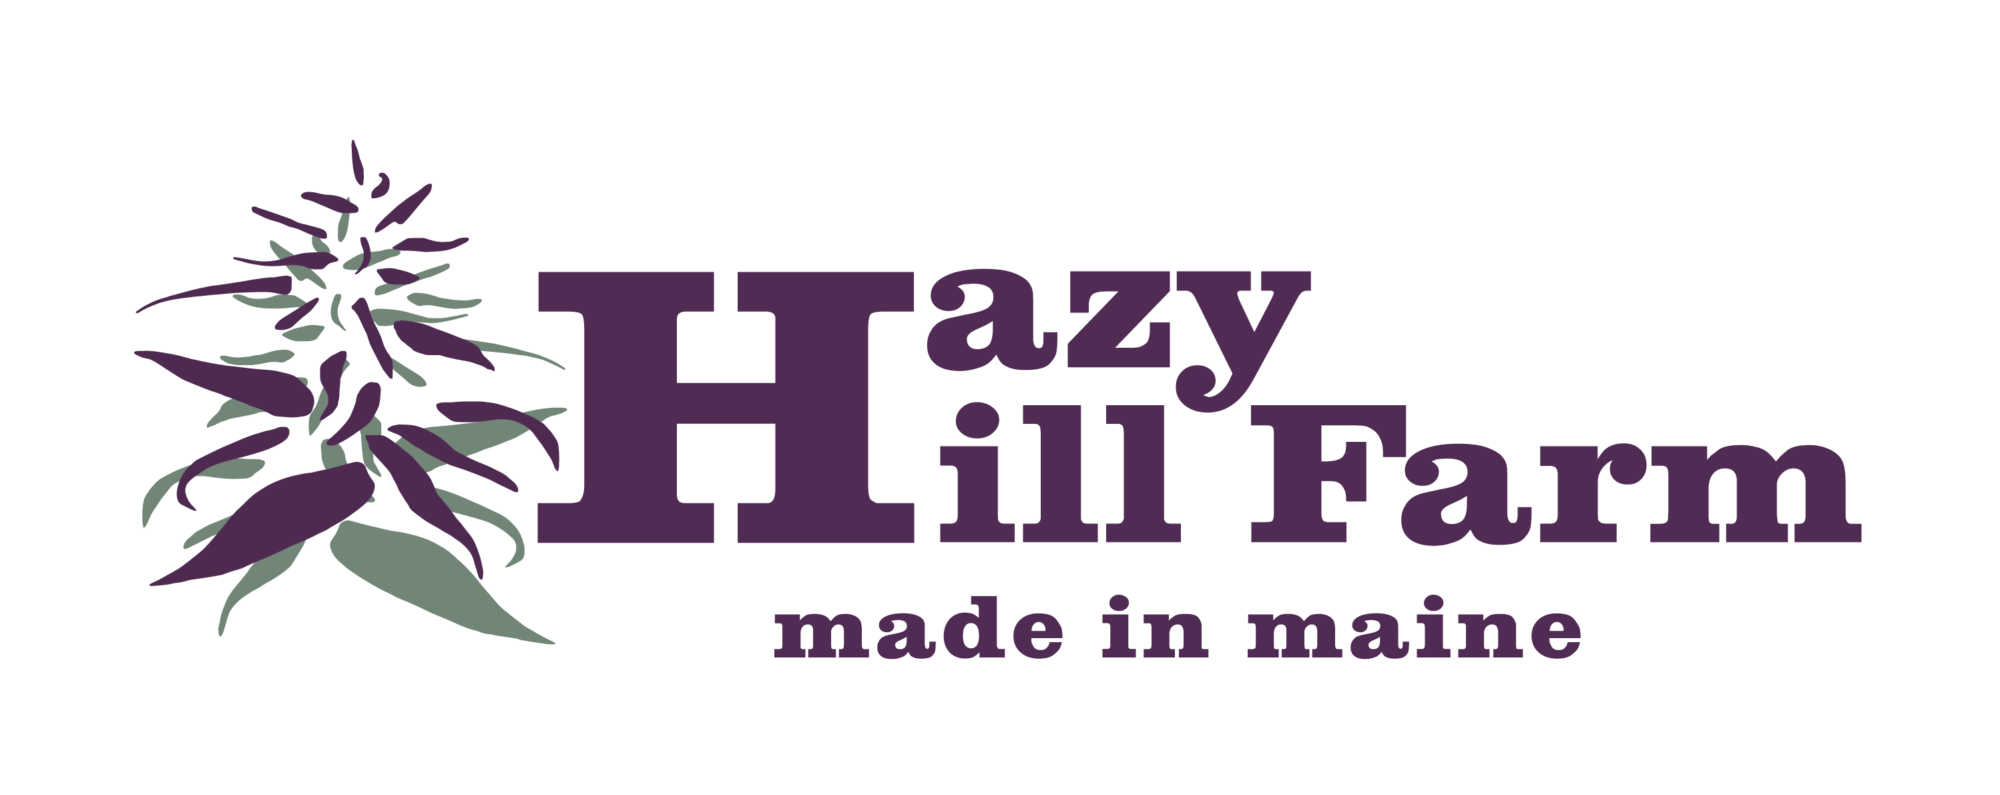 HHF_logo_005_text_cola